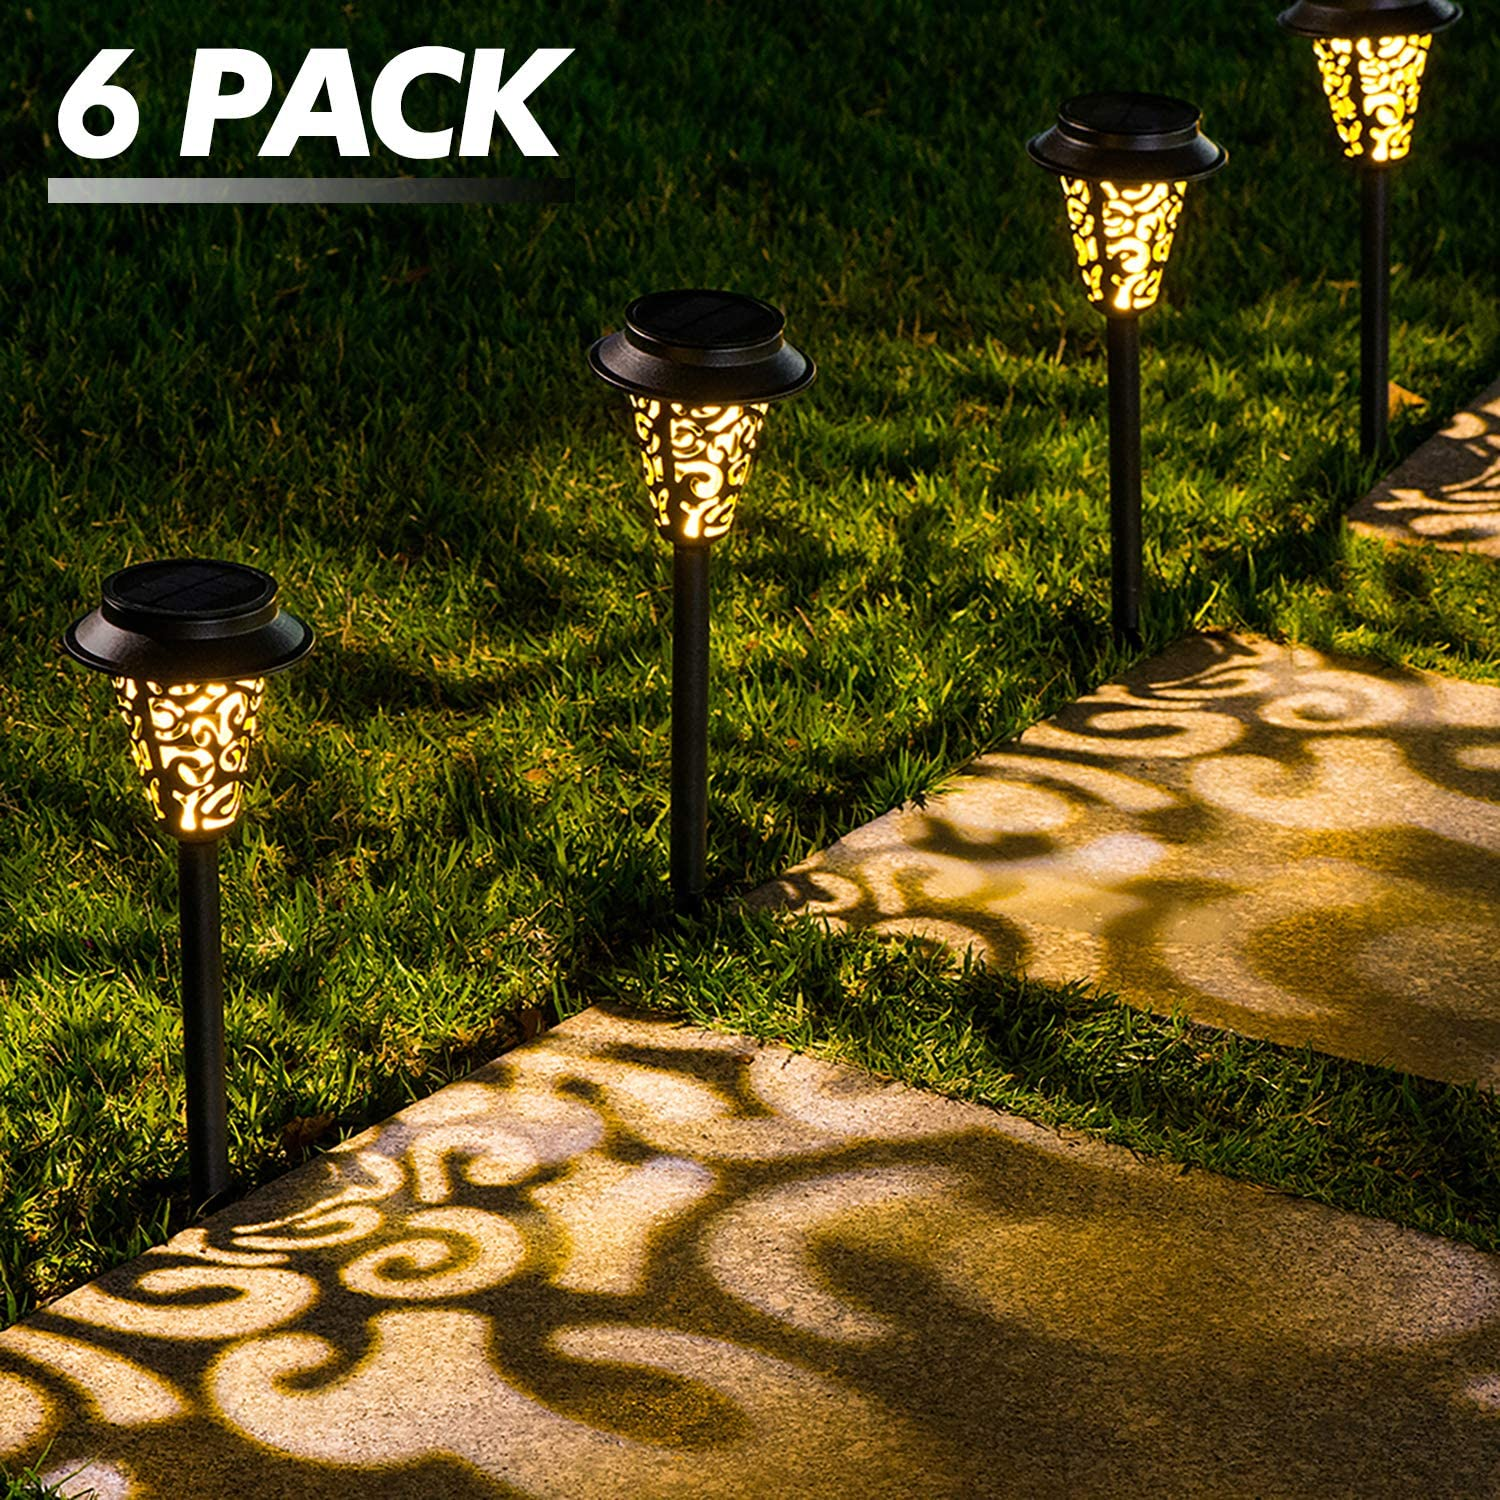 LeiDrail Solar Pathway Lights Outdoor Garden Path Light Warm White LED Black Metal Stake Landscape Lighting Decorative Waterproof for Yard Patio Walkway Lawn In-Ground Spike - 6 Pack